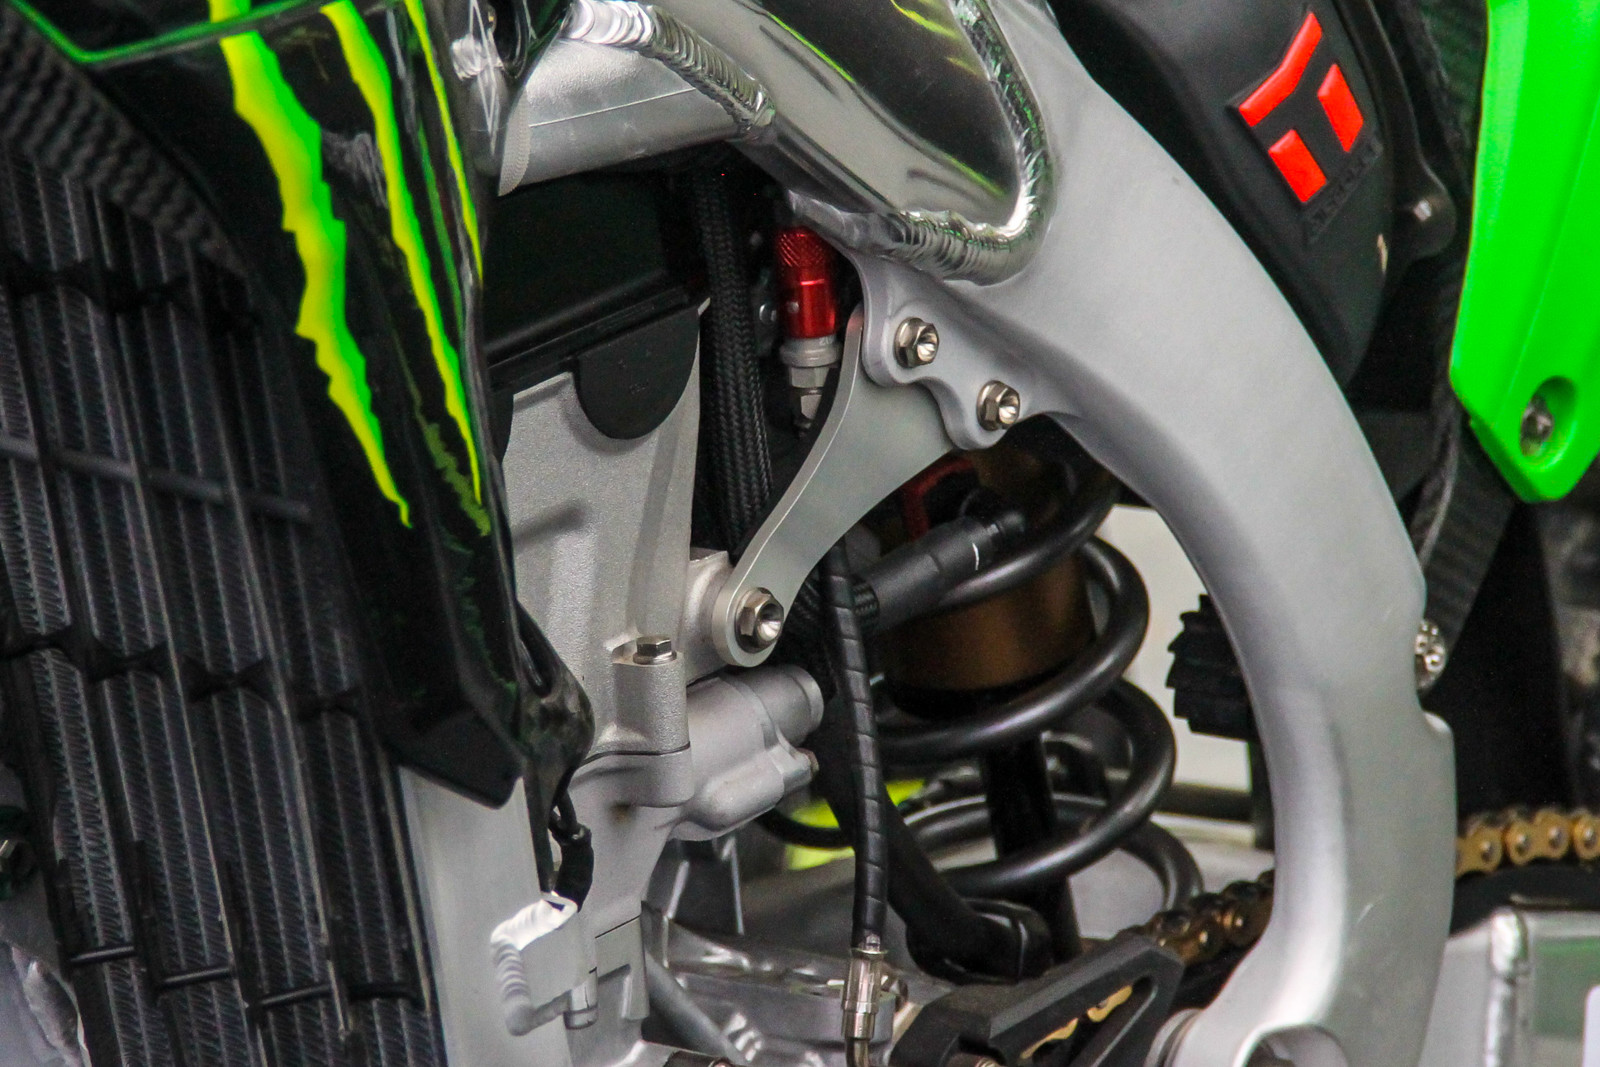 While the engine mount may look stock, it's not. Different materials and thicknesses are found on the KRT KX450F-SRs.